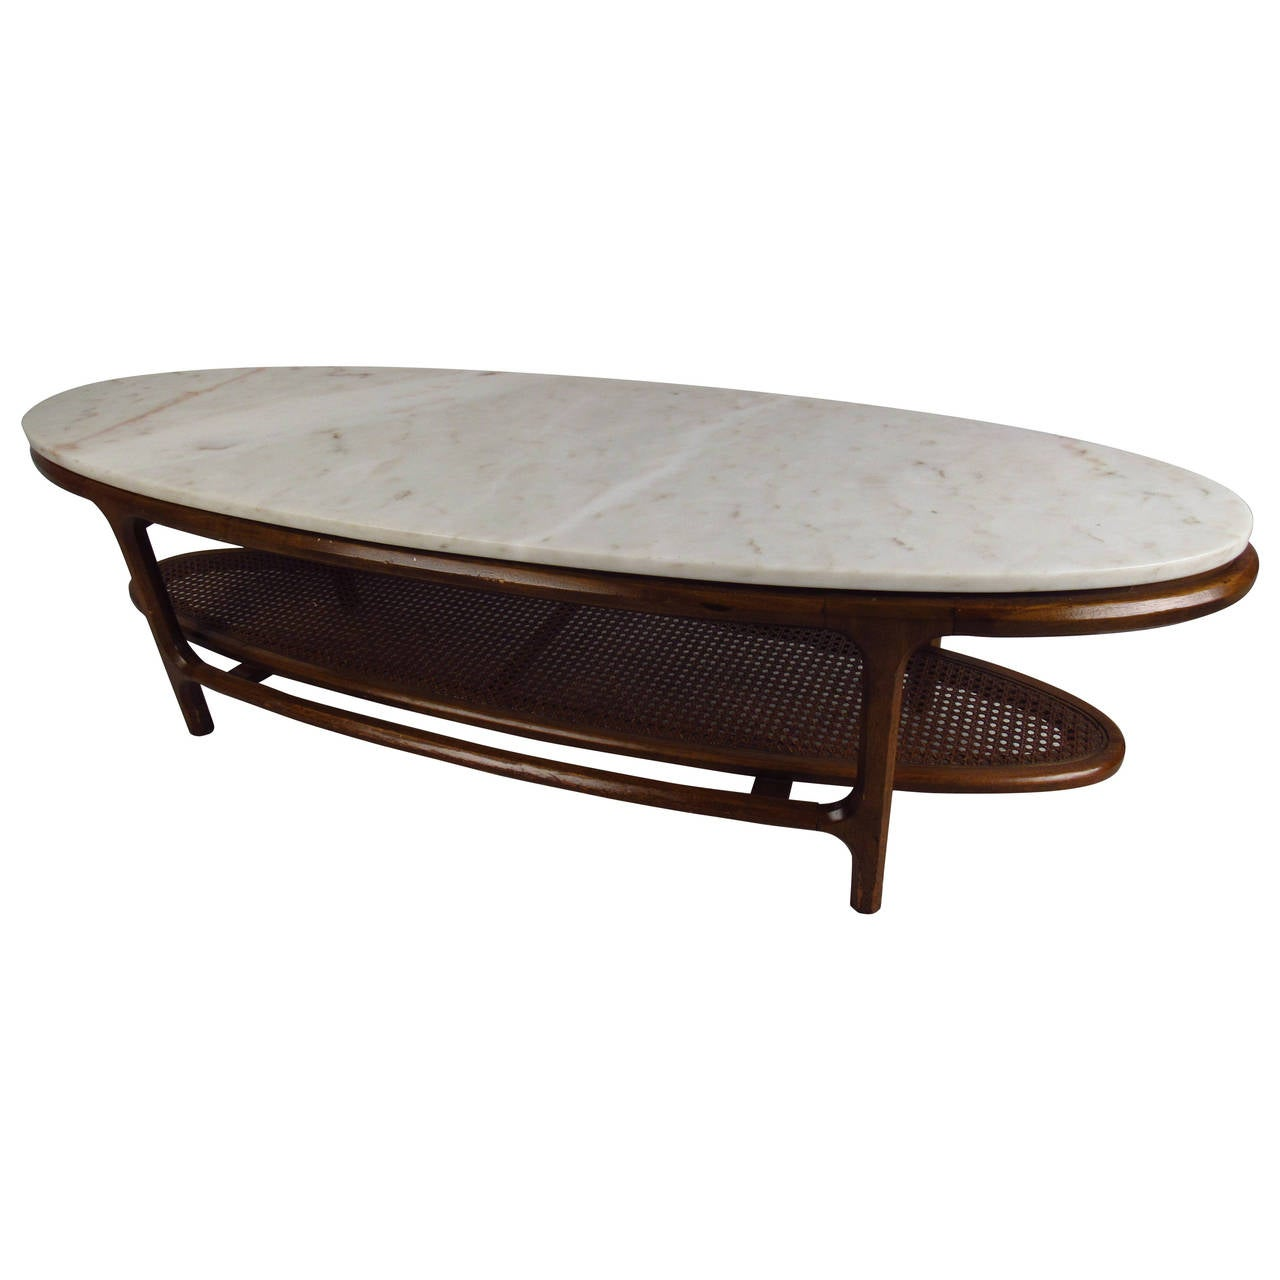 Mid century modern marble top coffee table with cane shelf for sale at 1stdibs Stone coffee table top